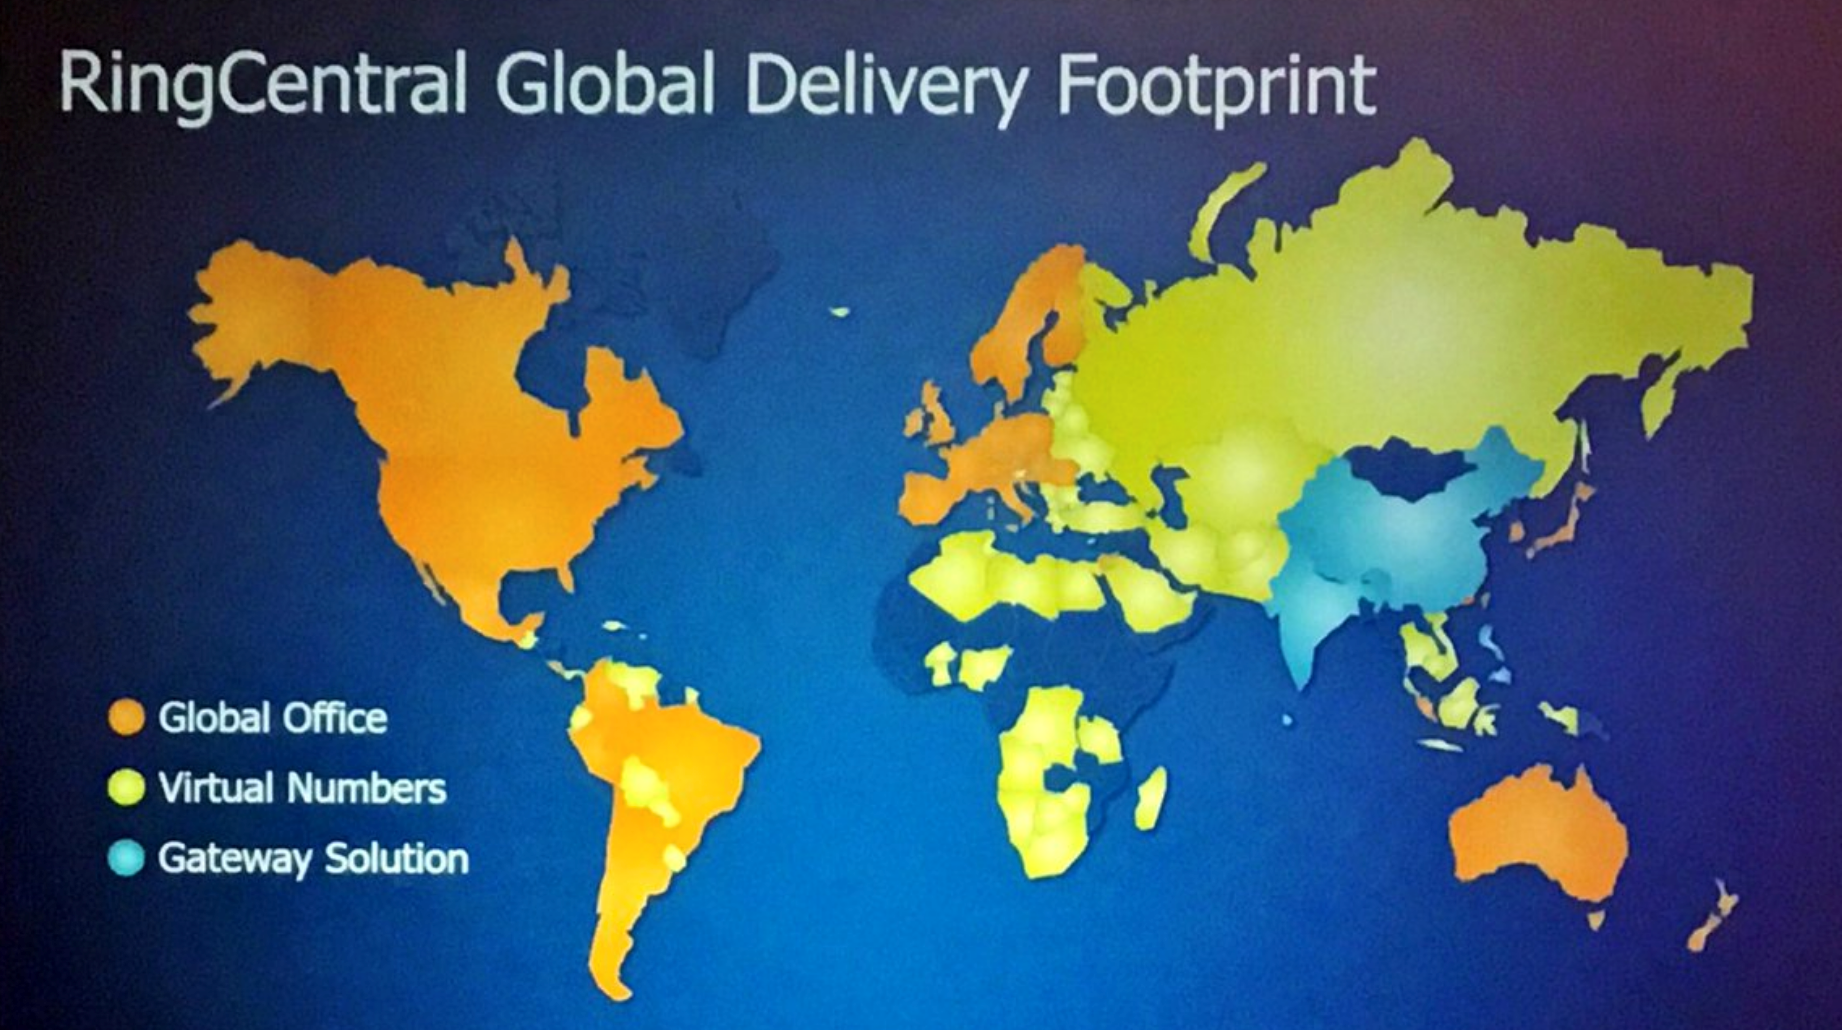 RingCentral Global Delivery Footprint